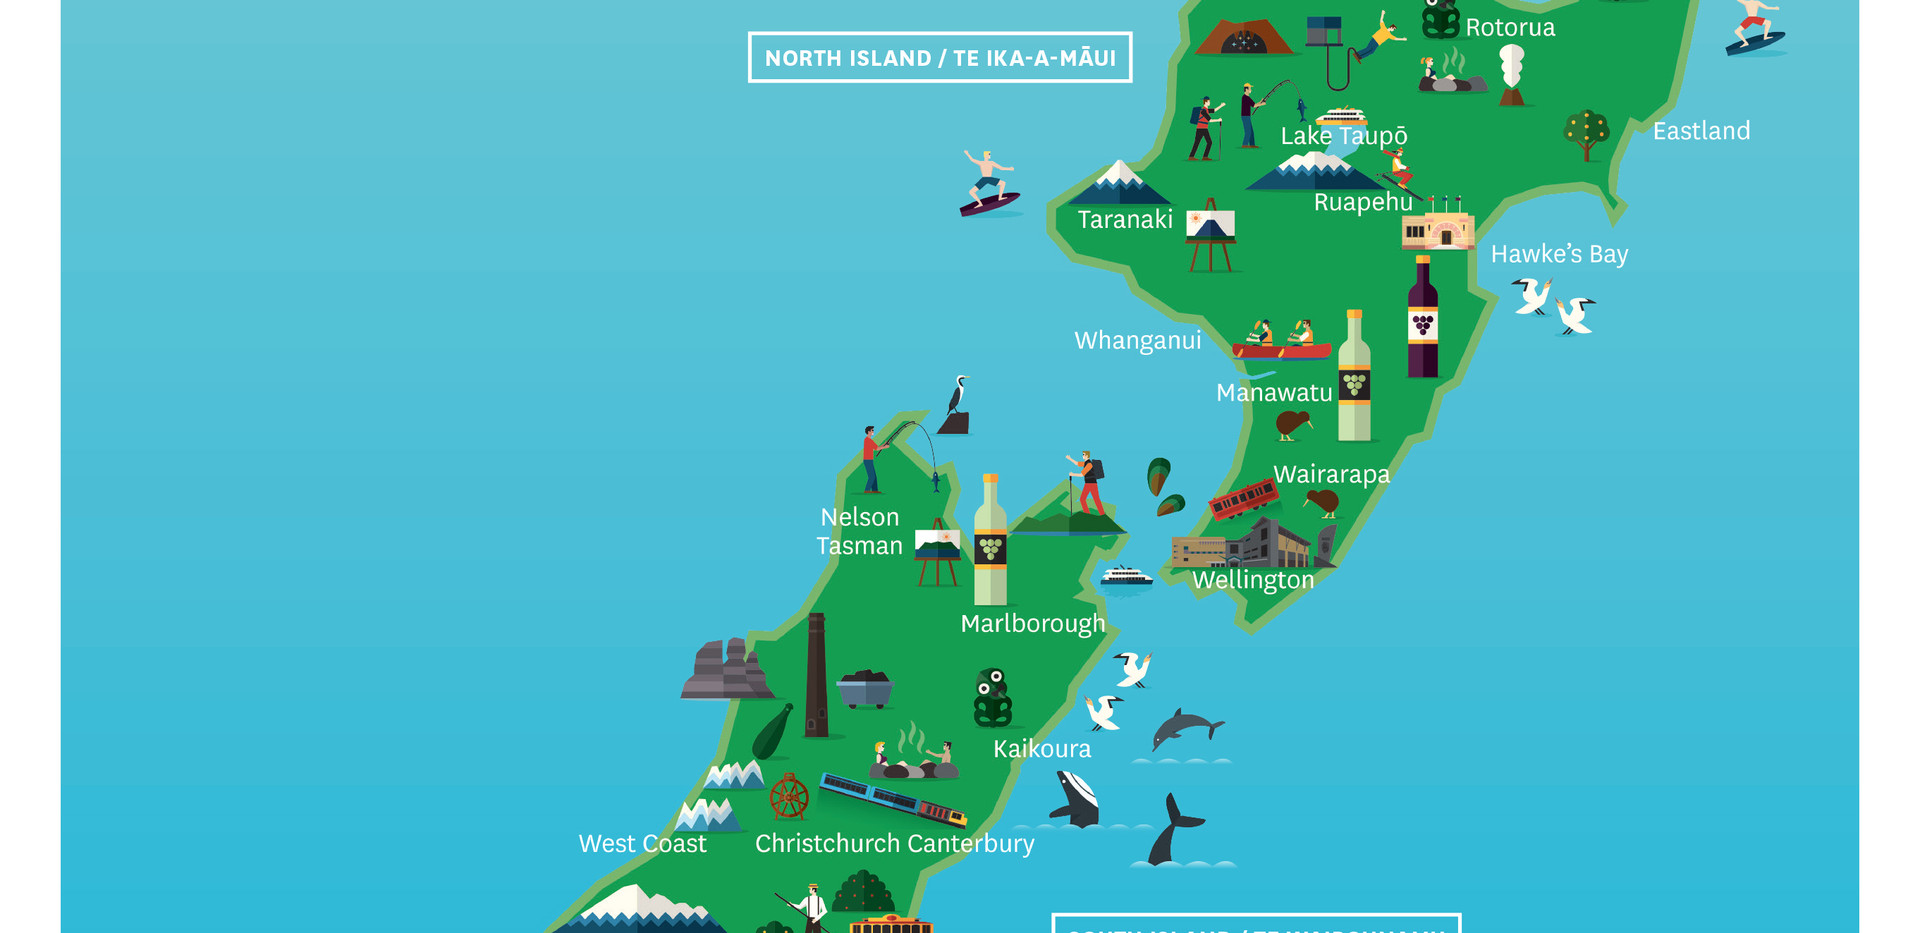 NZ MAP OF ACTIVITIES